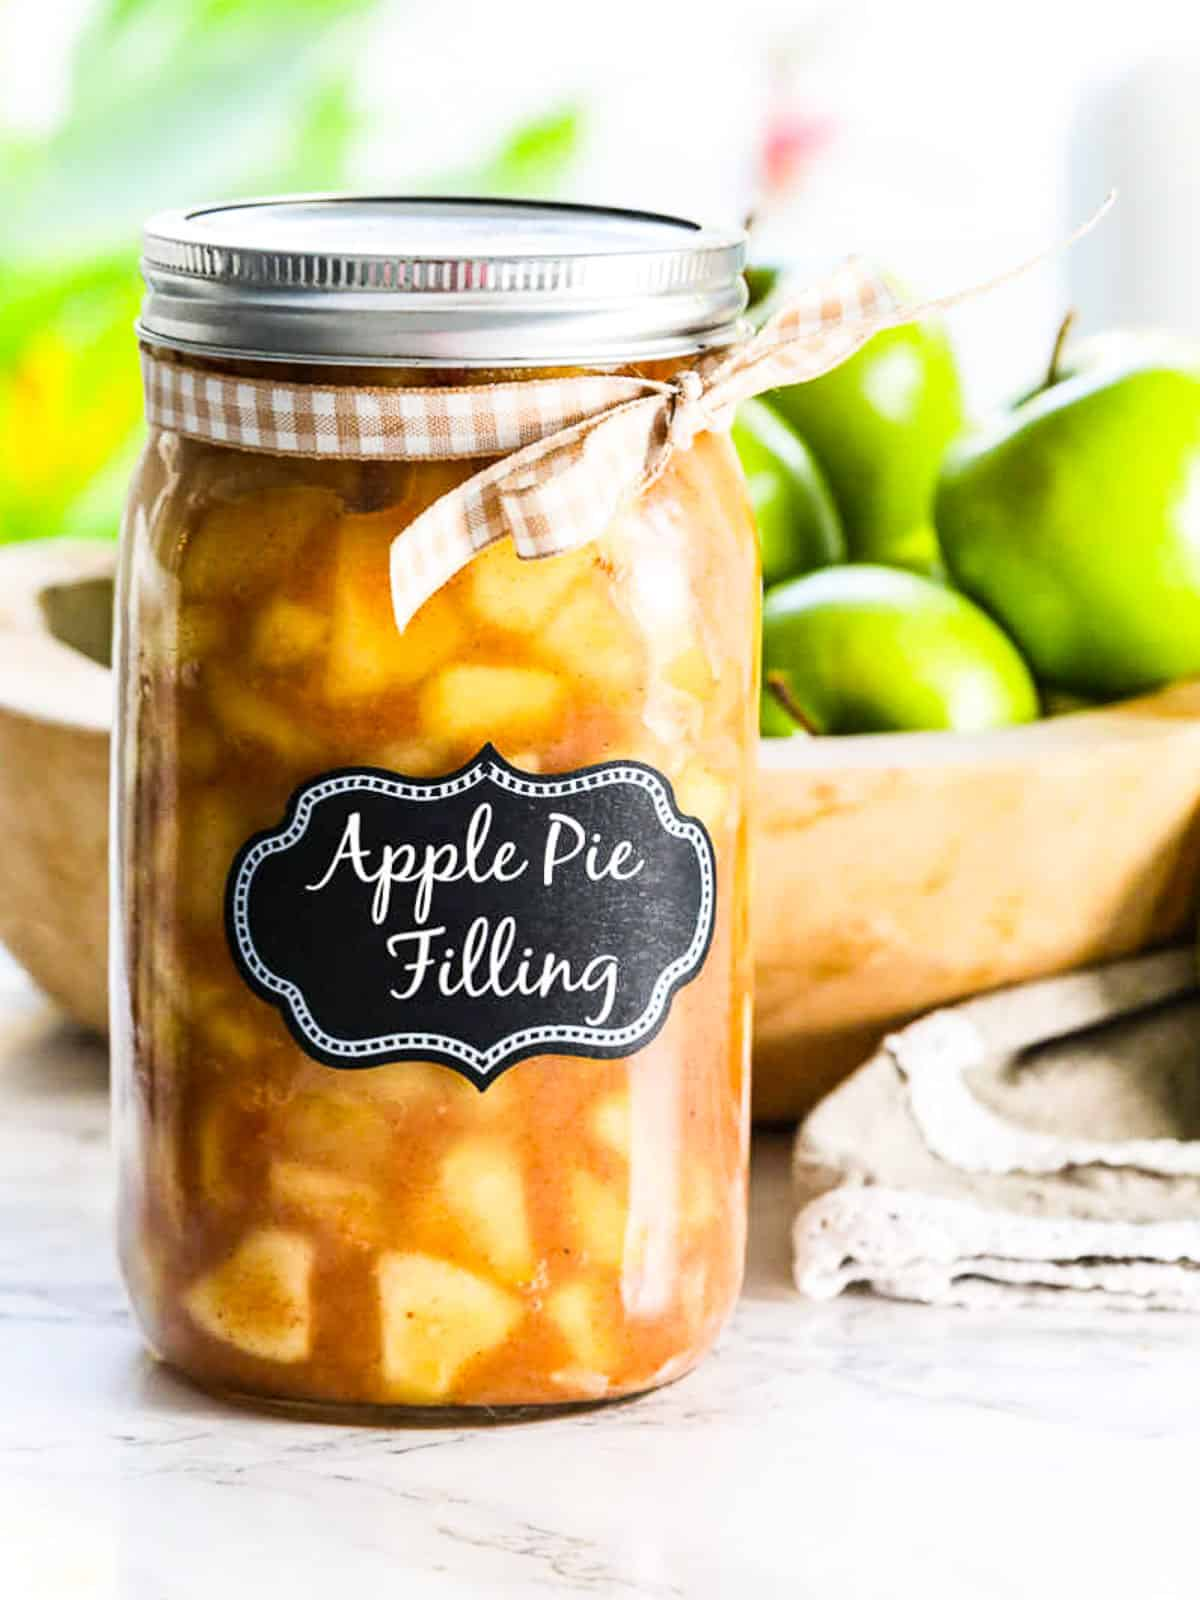 A large glass jar filled with apple pie filling and wood bowl of green apples.